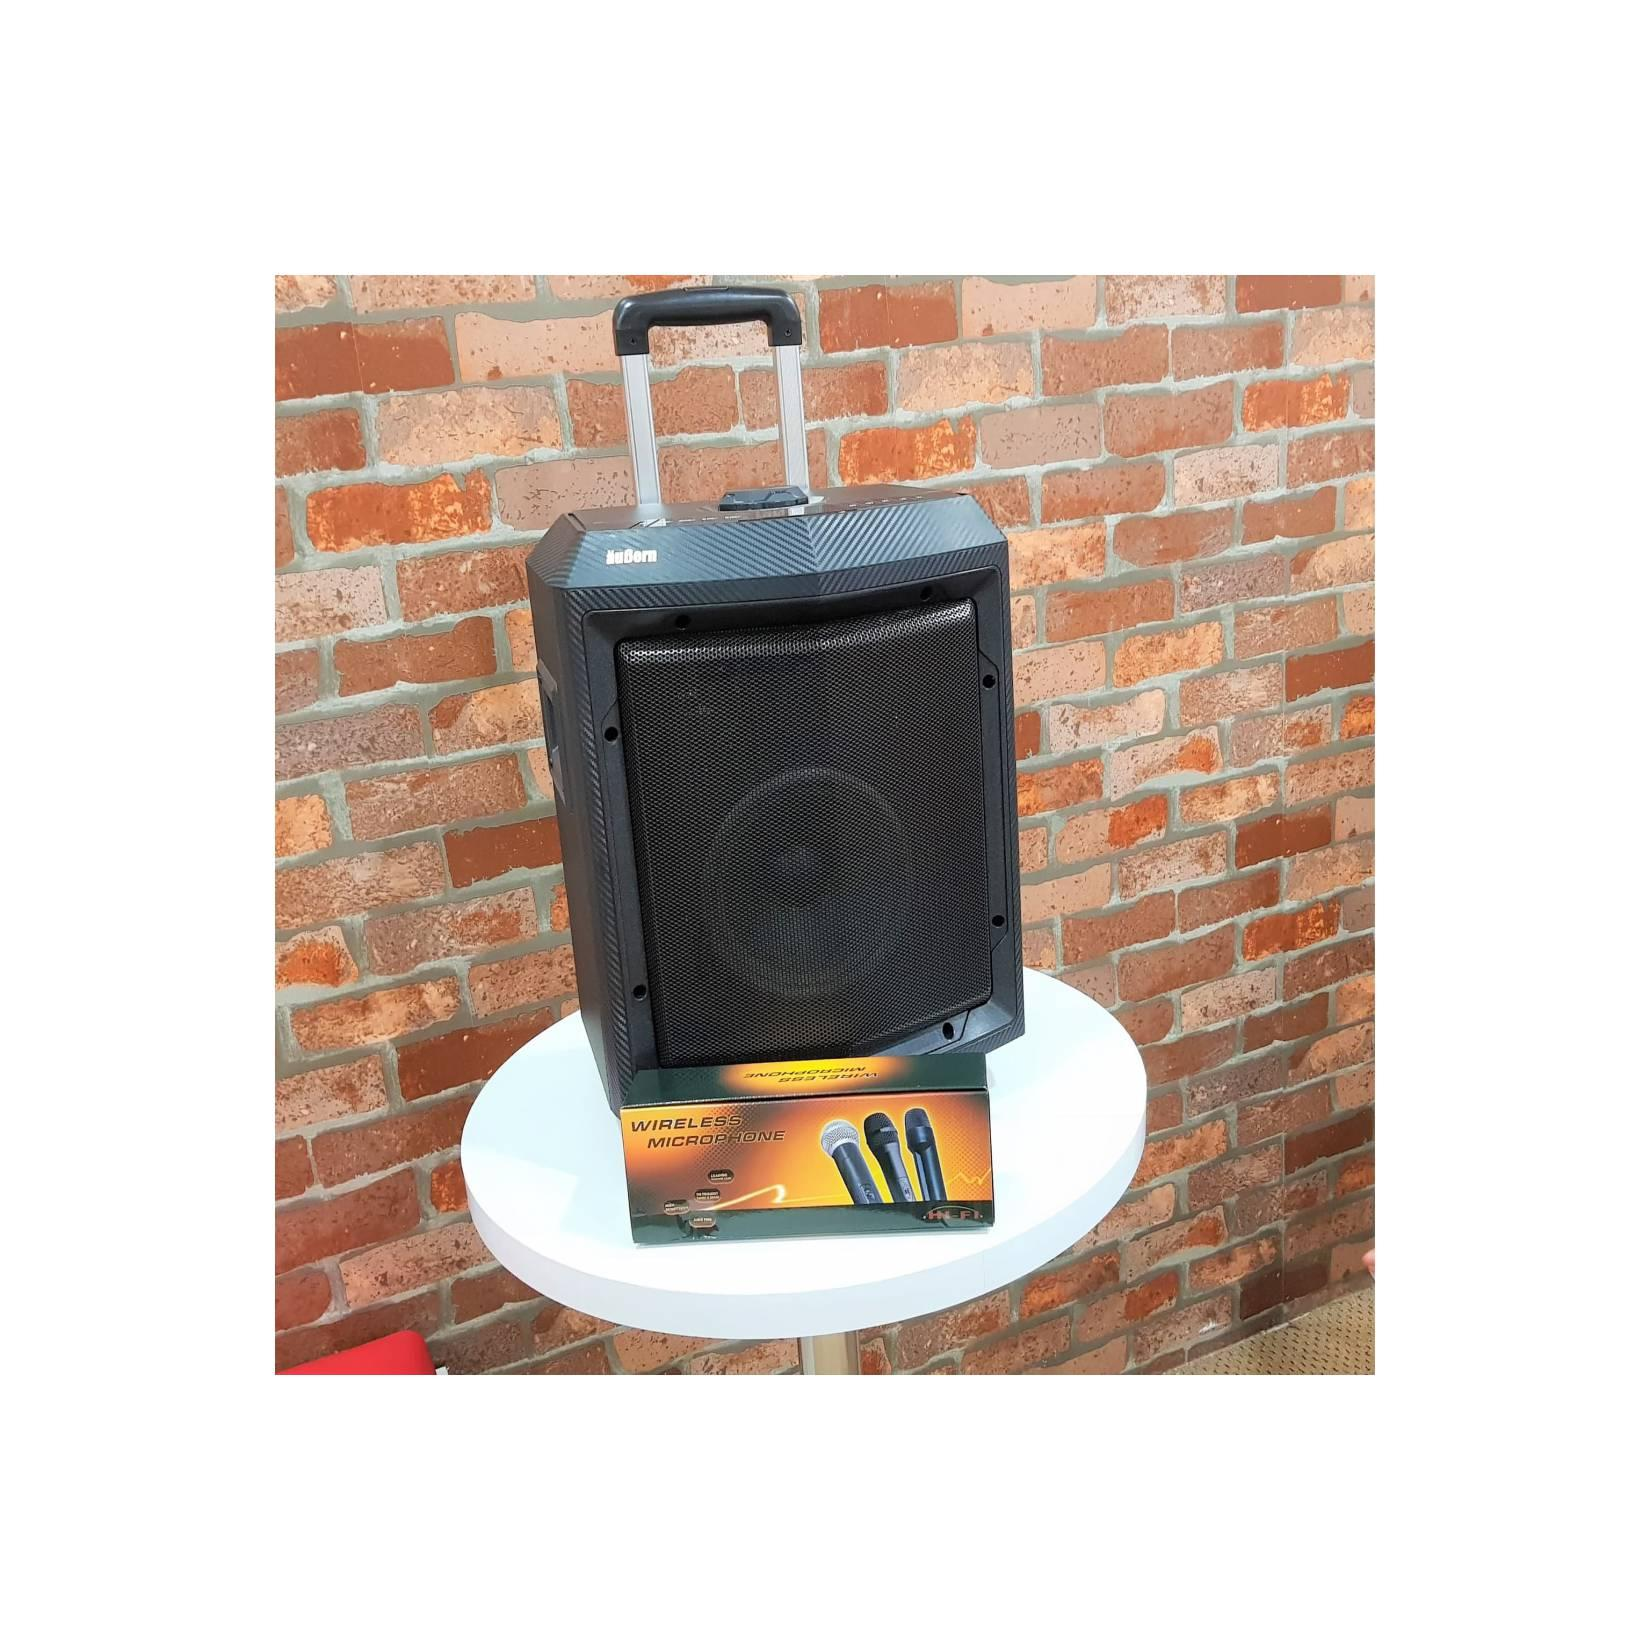 PA SYSTEM AUBERN PS- 8CT PORTABLE AMPLIFIER WIRELESS AUDIO SYSTEM